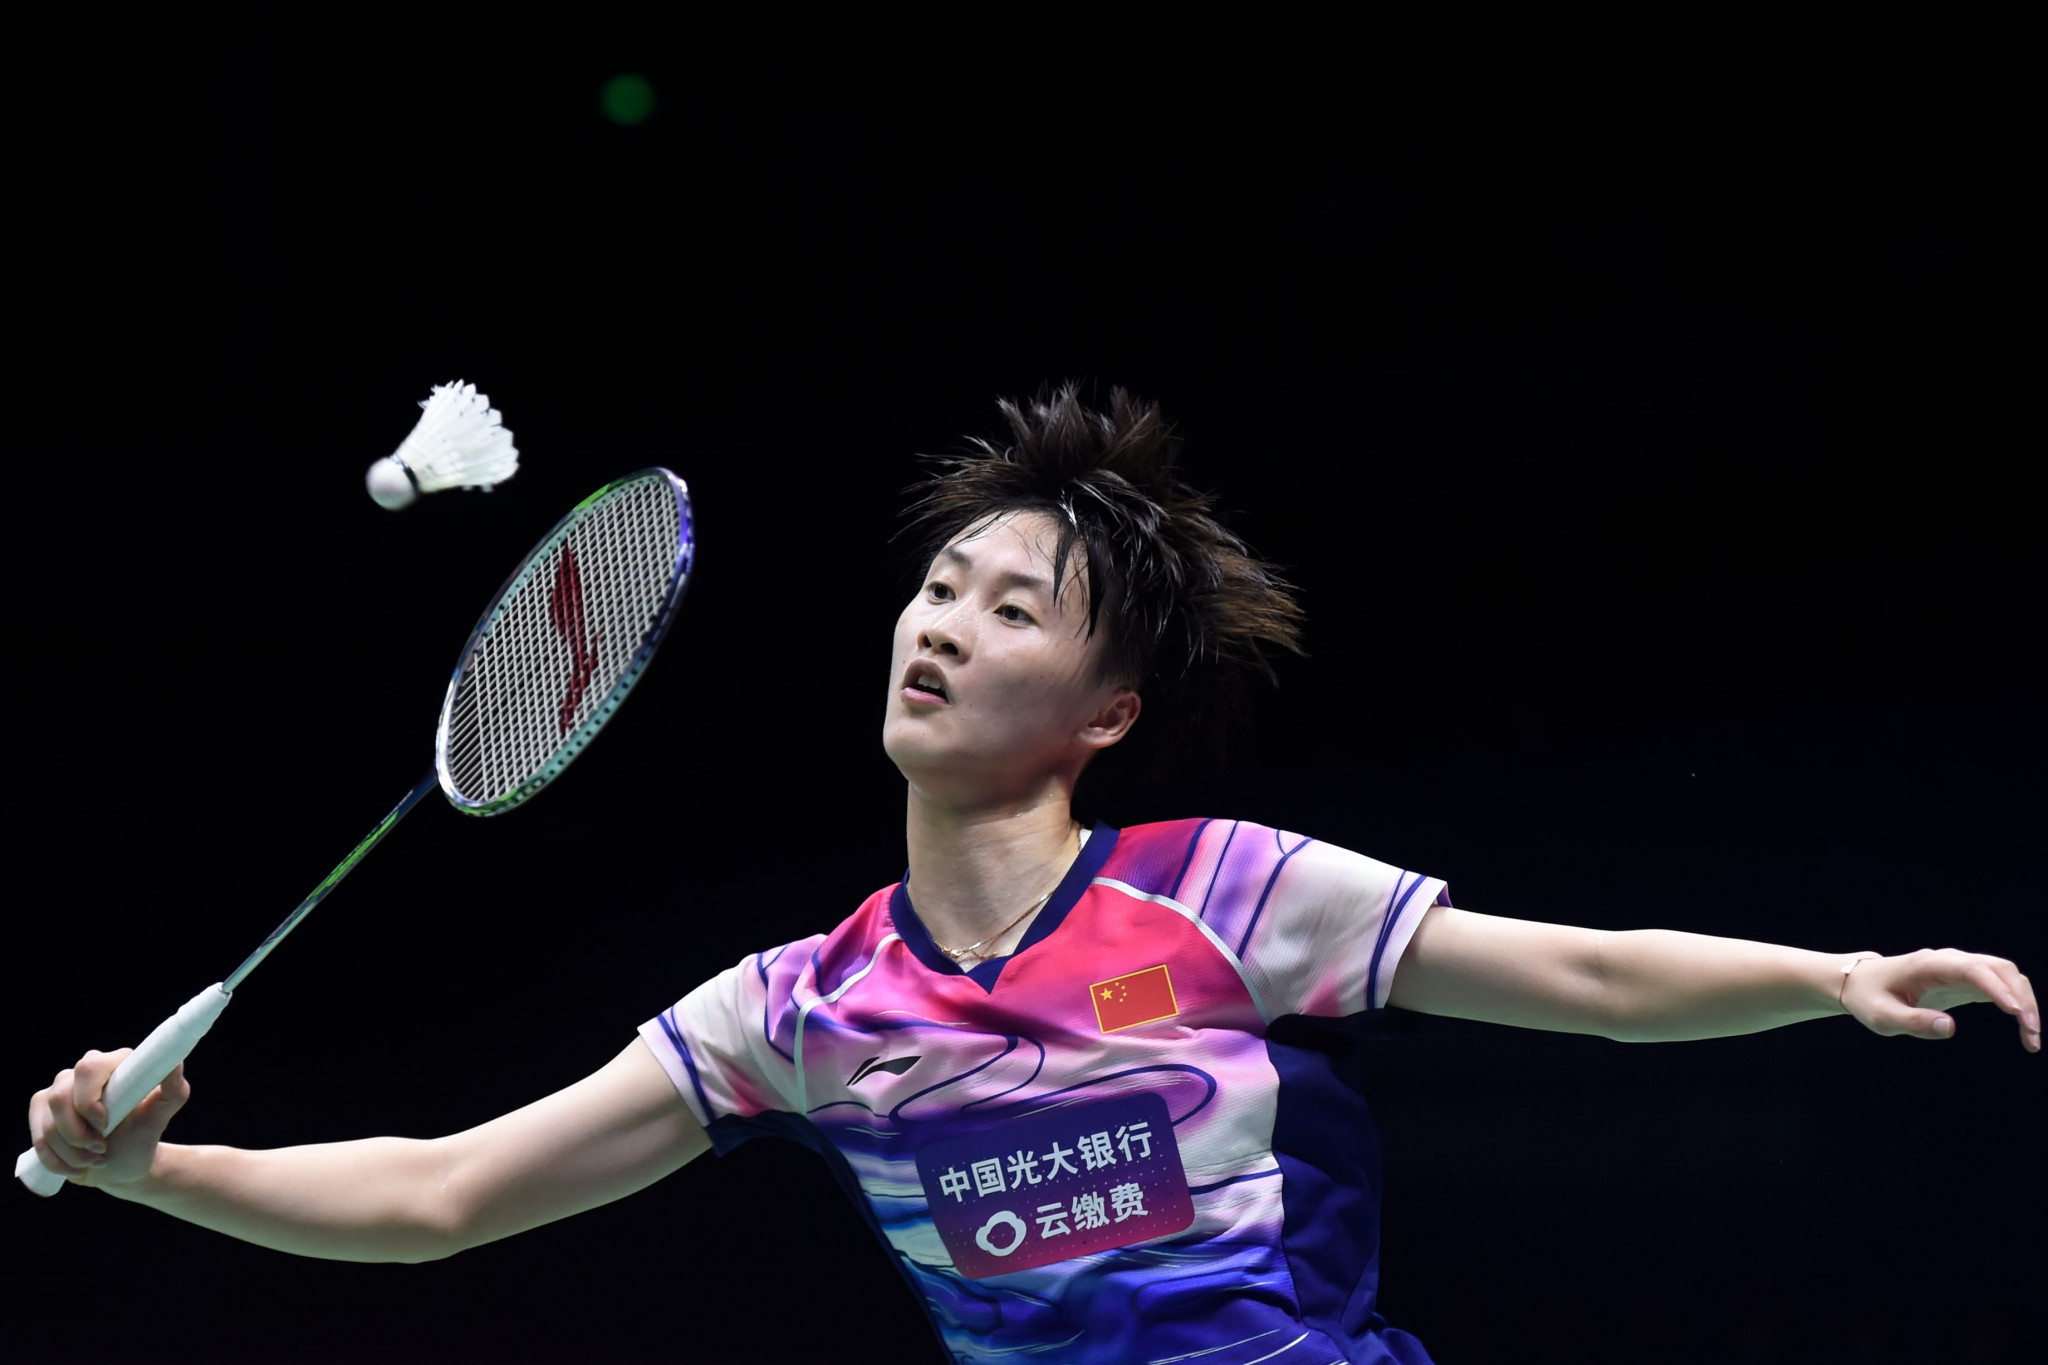 Chen Yufei advanced in the women's draw with a straight games victory ©Getty Images